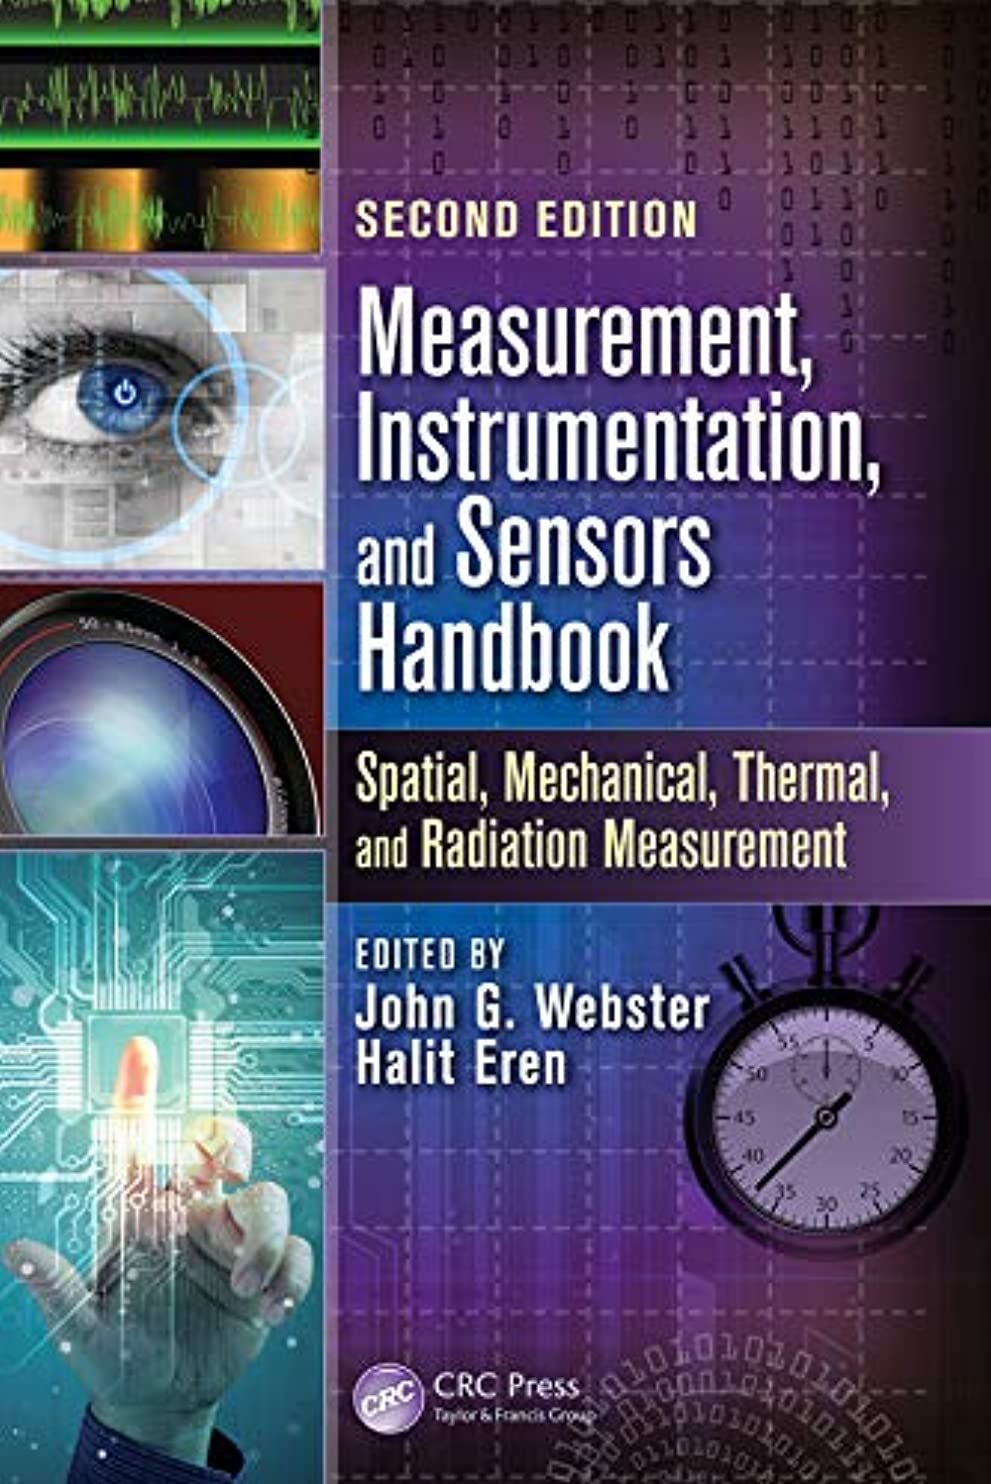 資金暗殺する懸念Measurement, Instrumentation, and Sensors Handbook: Two-Volume Set (Electrical Engineering Handbook) (English Edition)